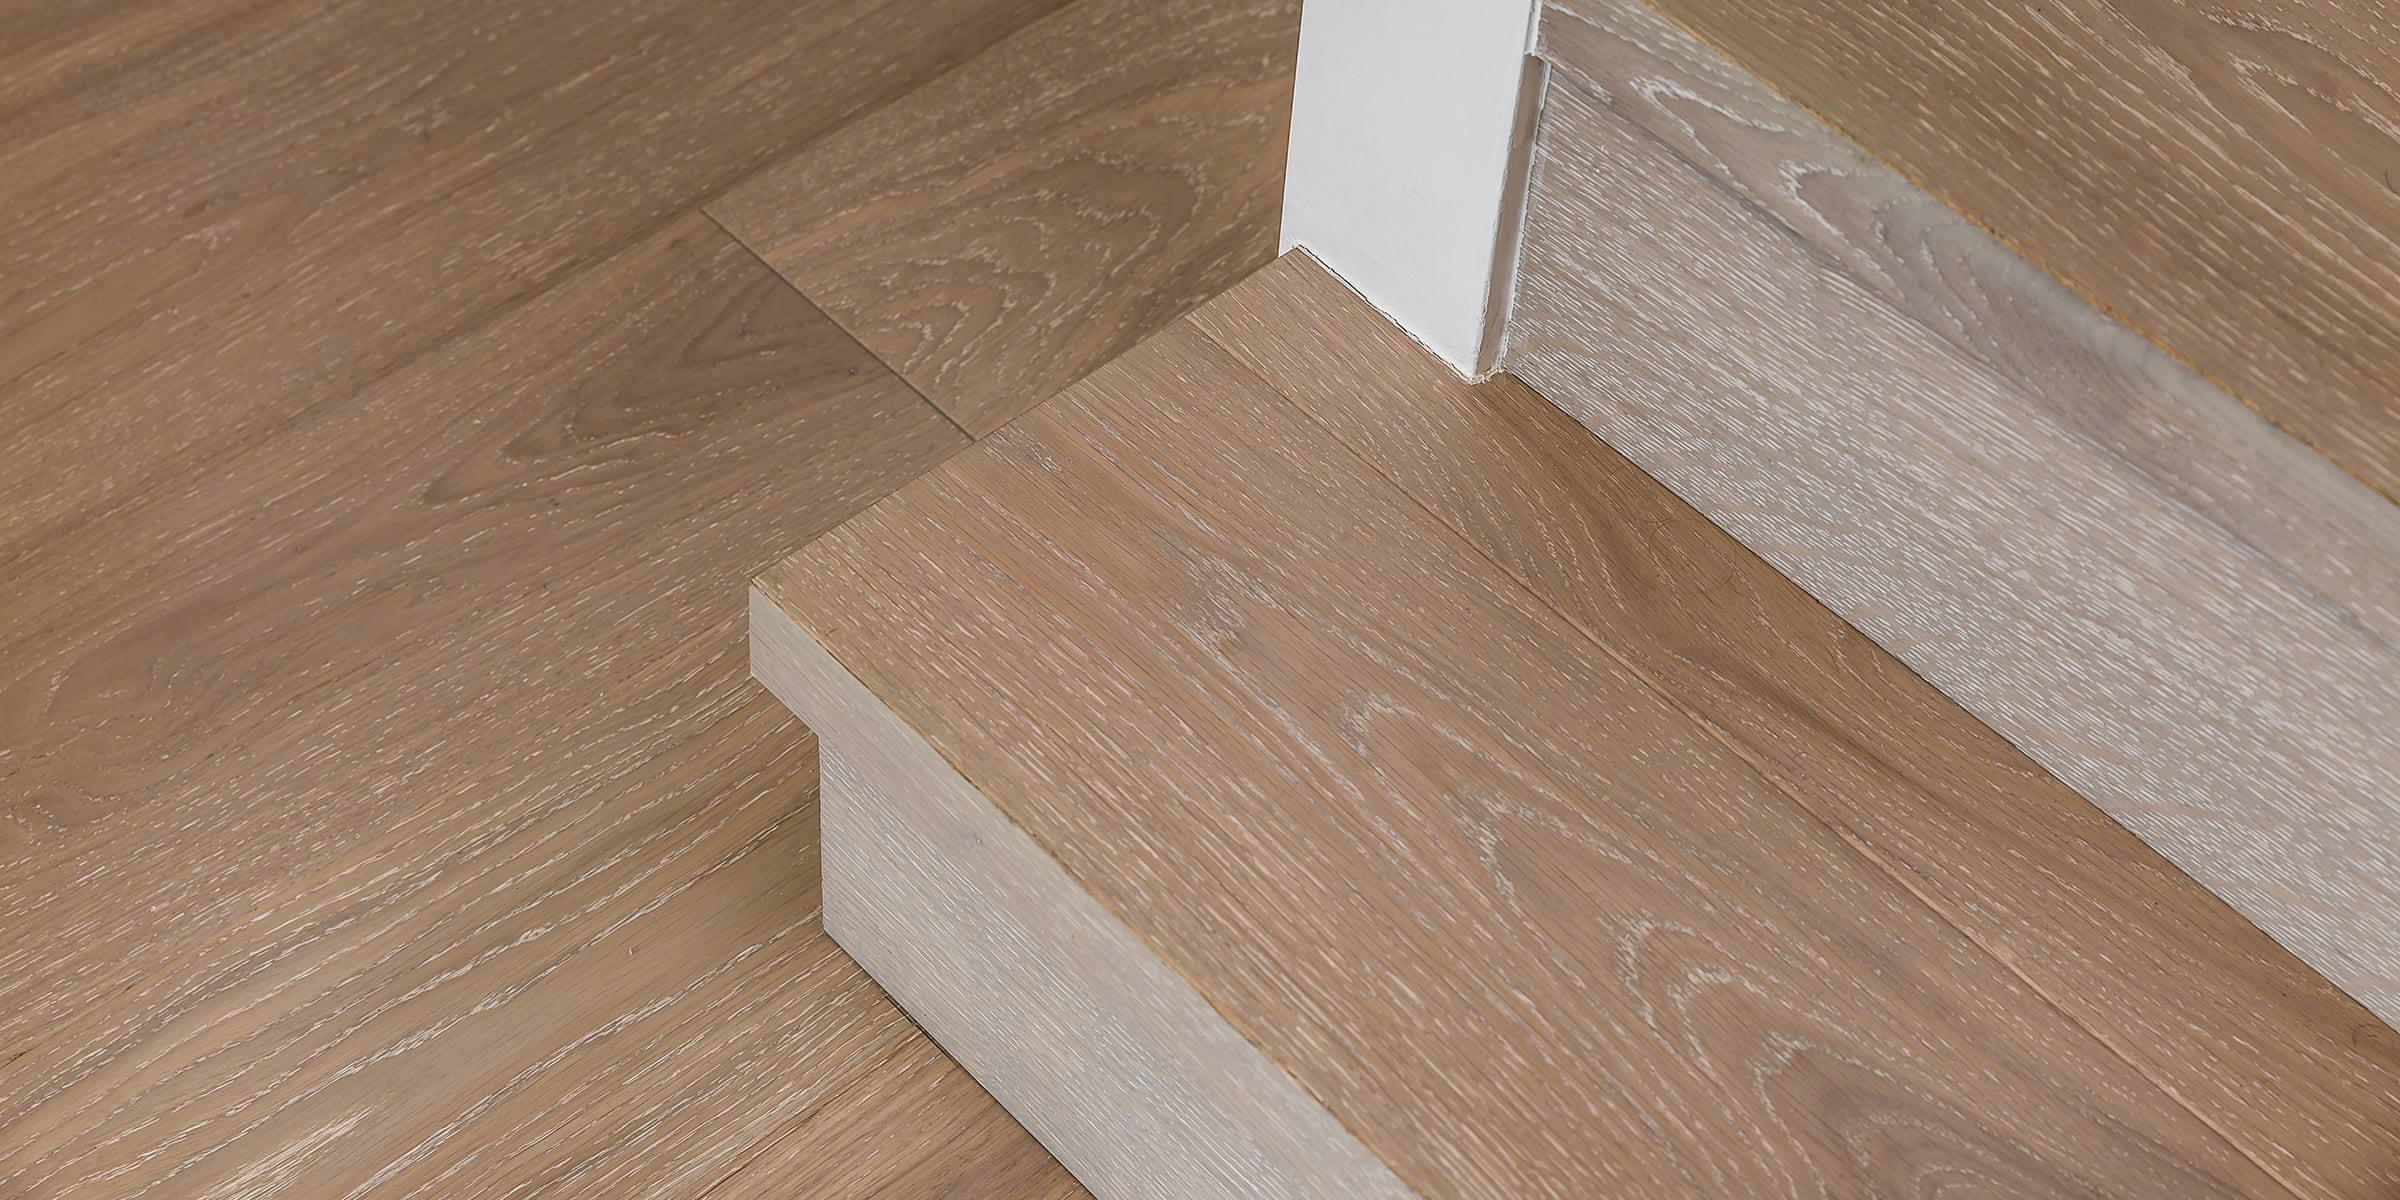 V4's Alpine Lock in Silver Sands wood floors complete this